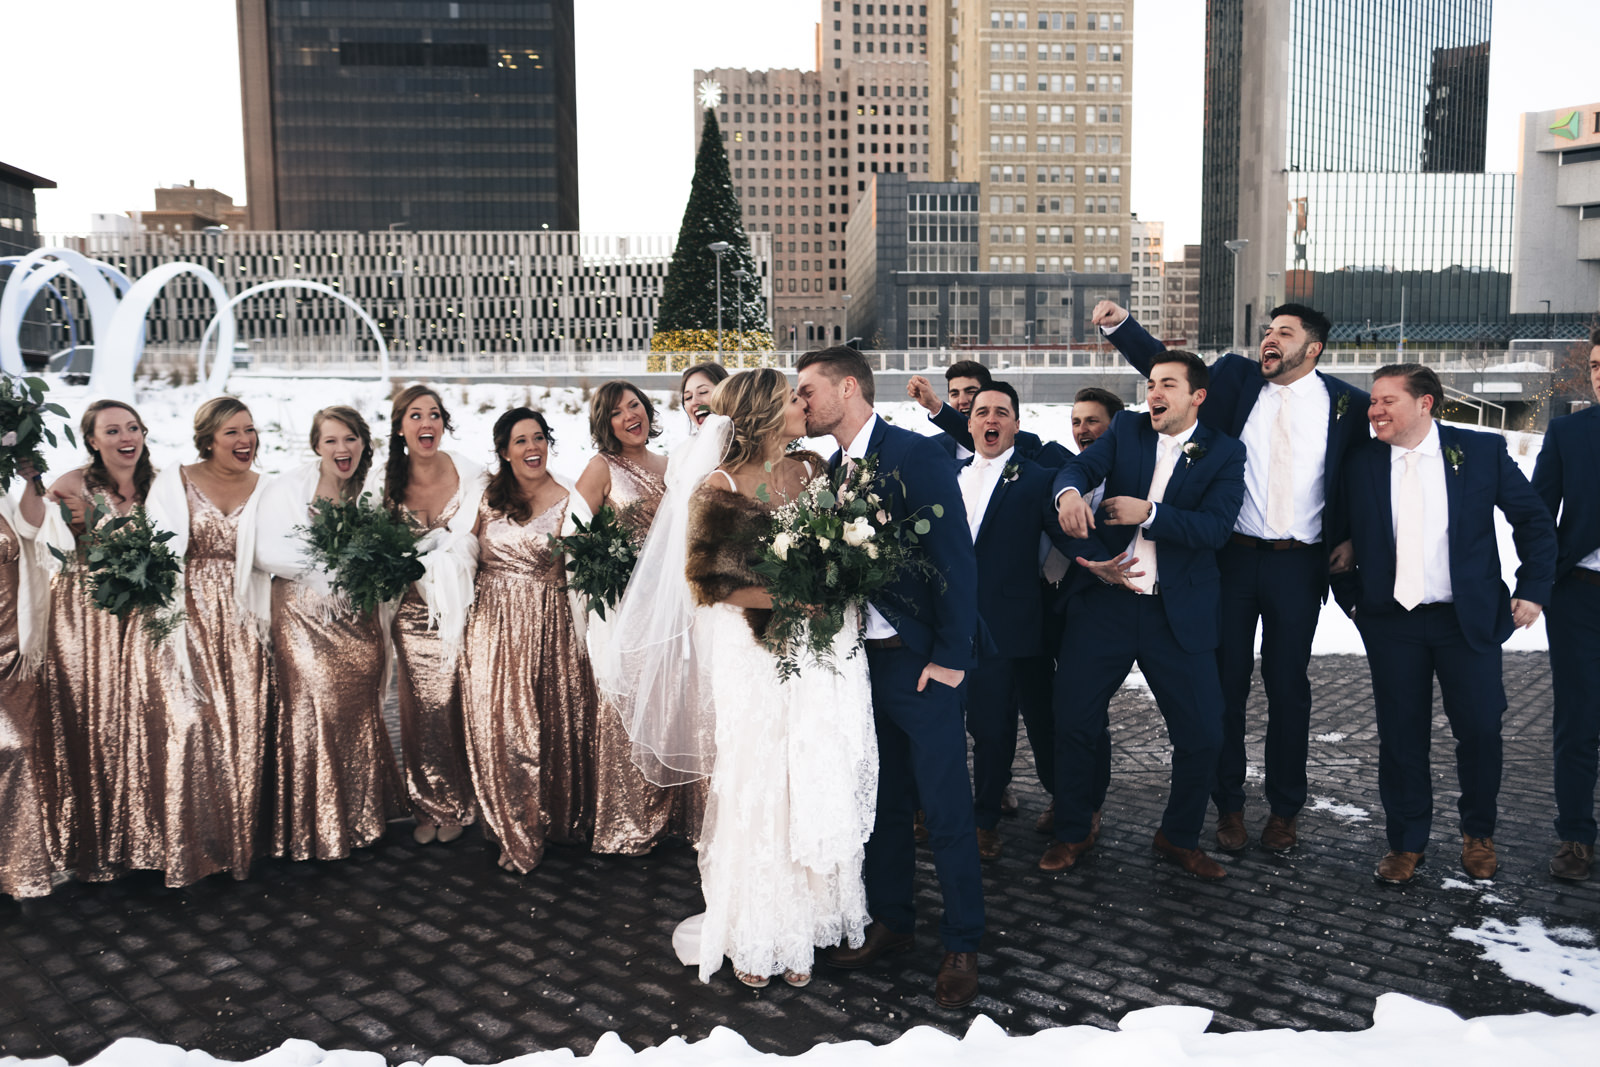 Bridal party in winter wedding in Downtown Toledo, Ohio.